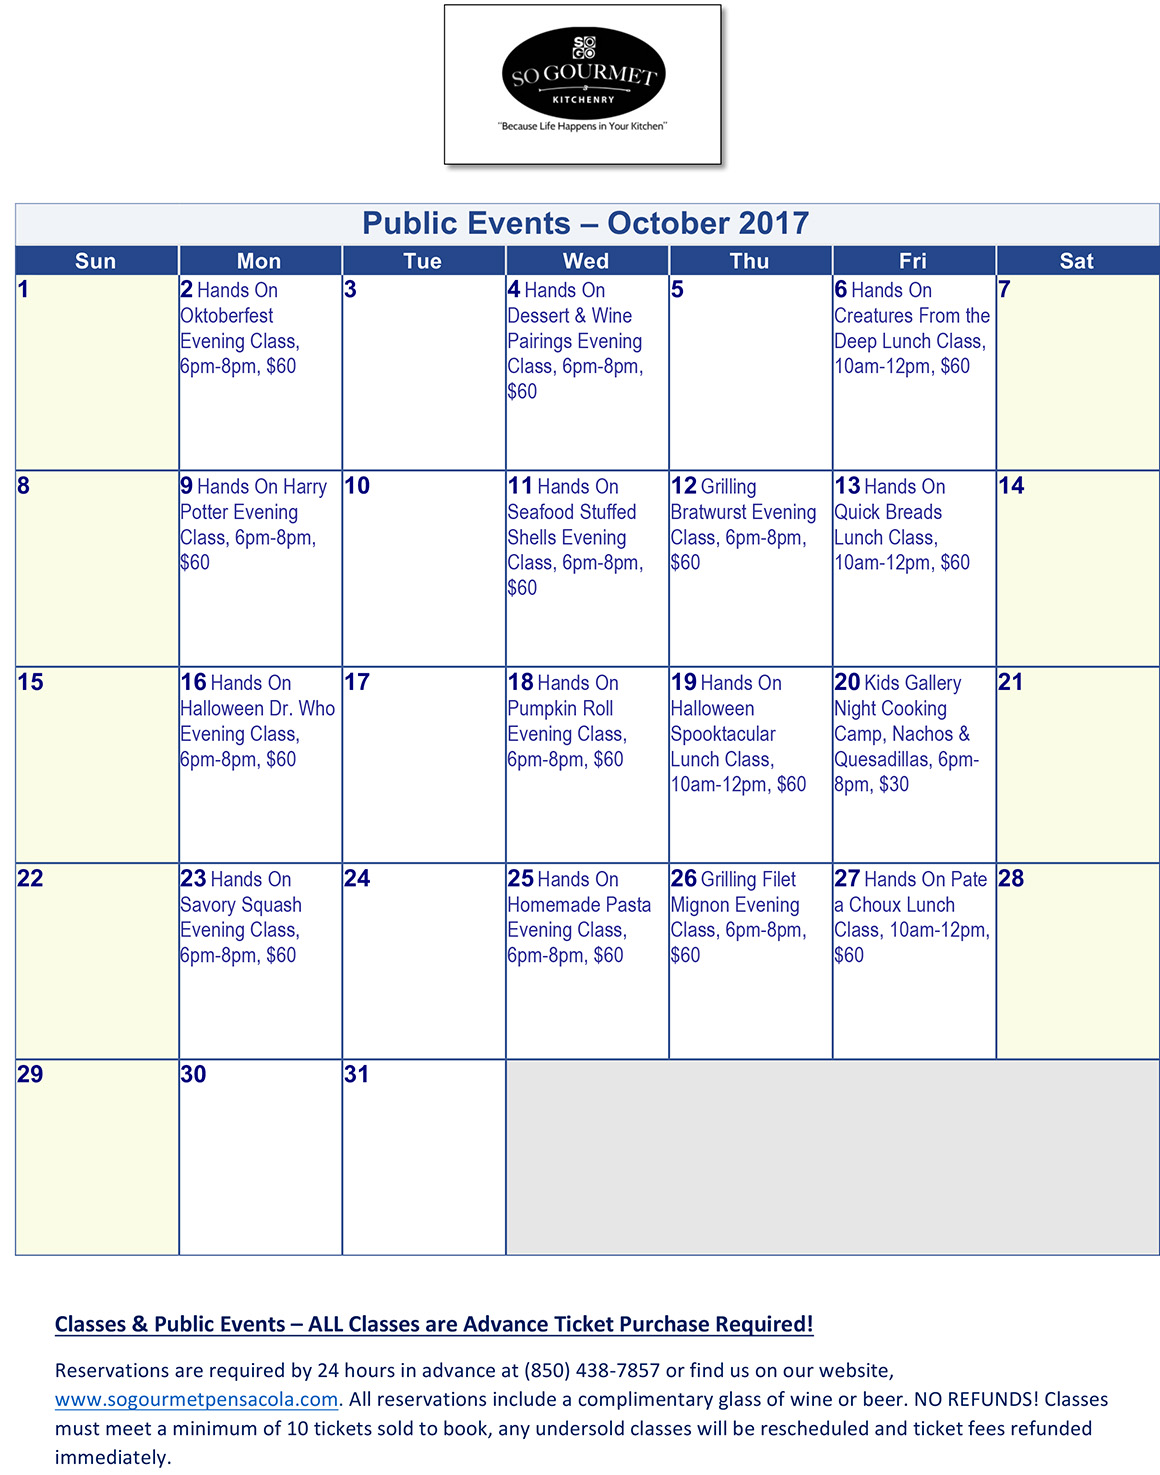 Microsoft Word - October-2017-Calendar.docx